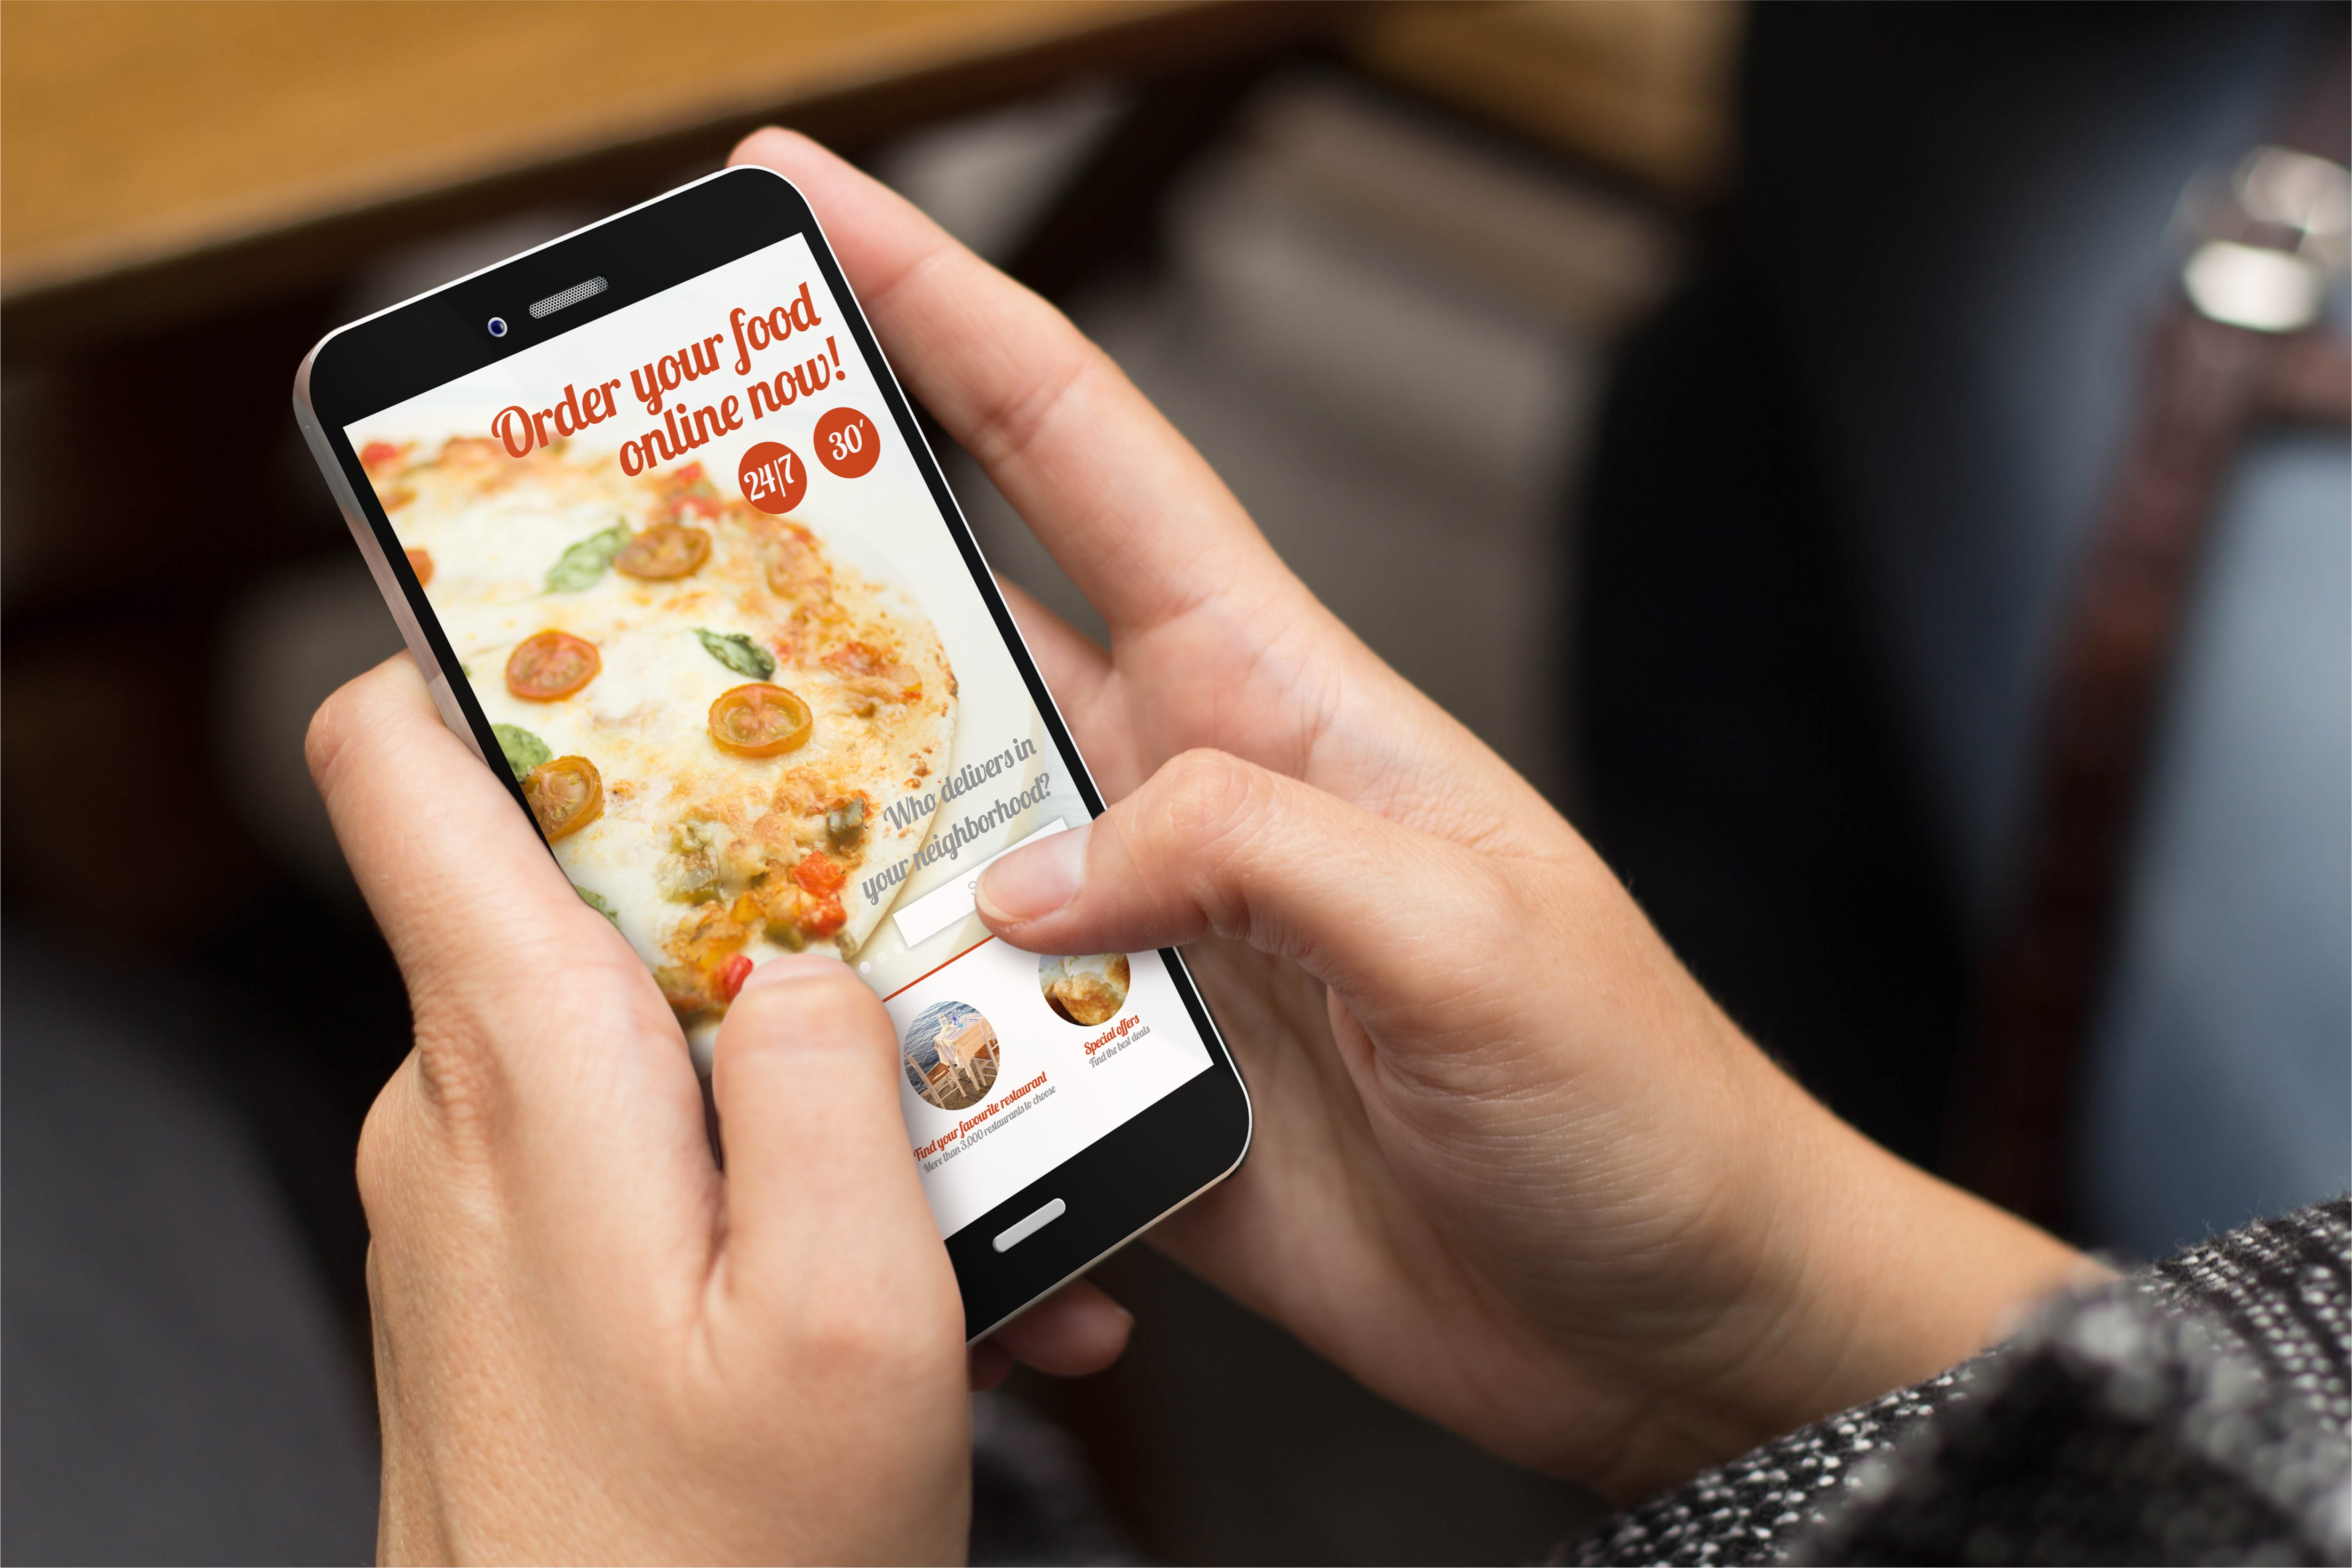 Restaurant And Delivery Provider Partnerships Prove Fickle